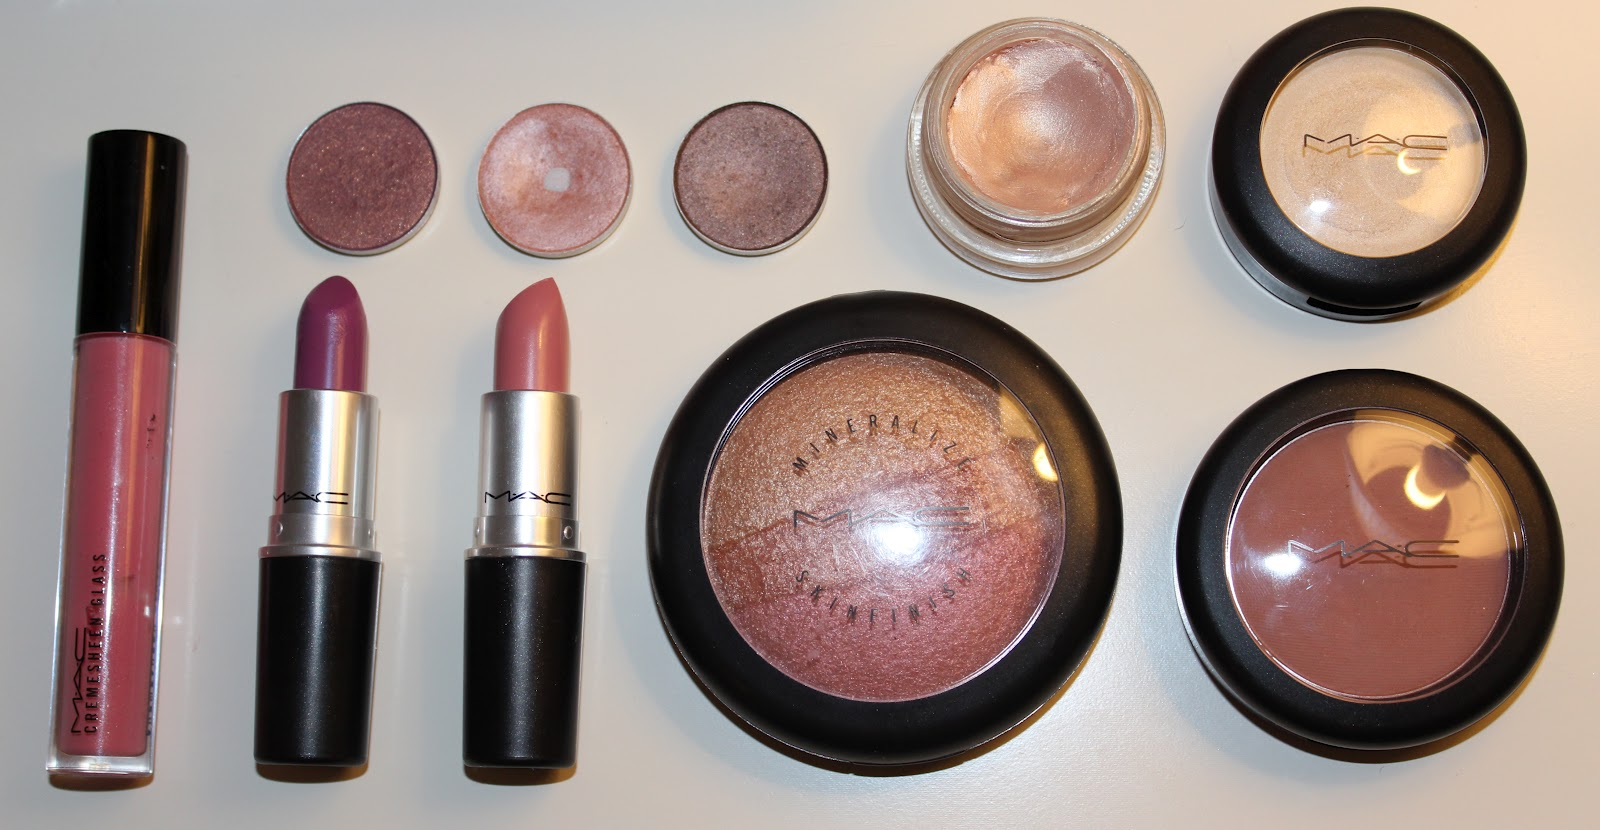 AshleighAilsa: My Top 10 Mac Products